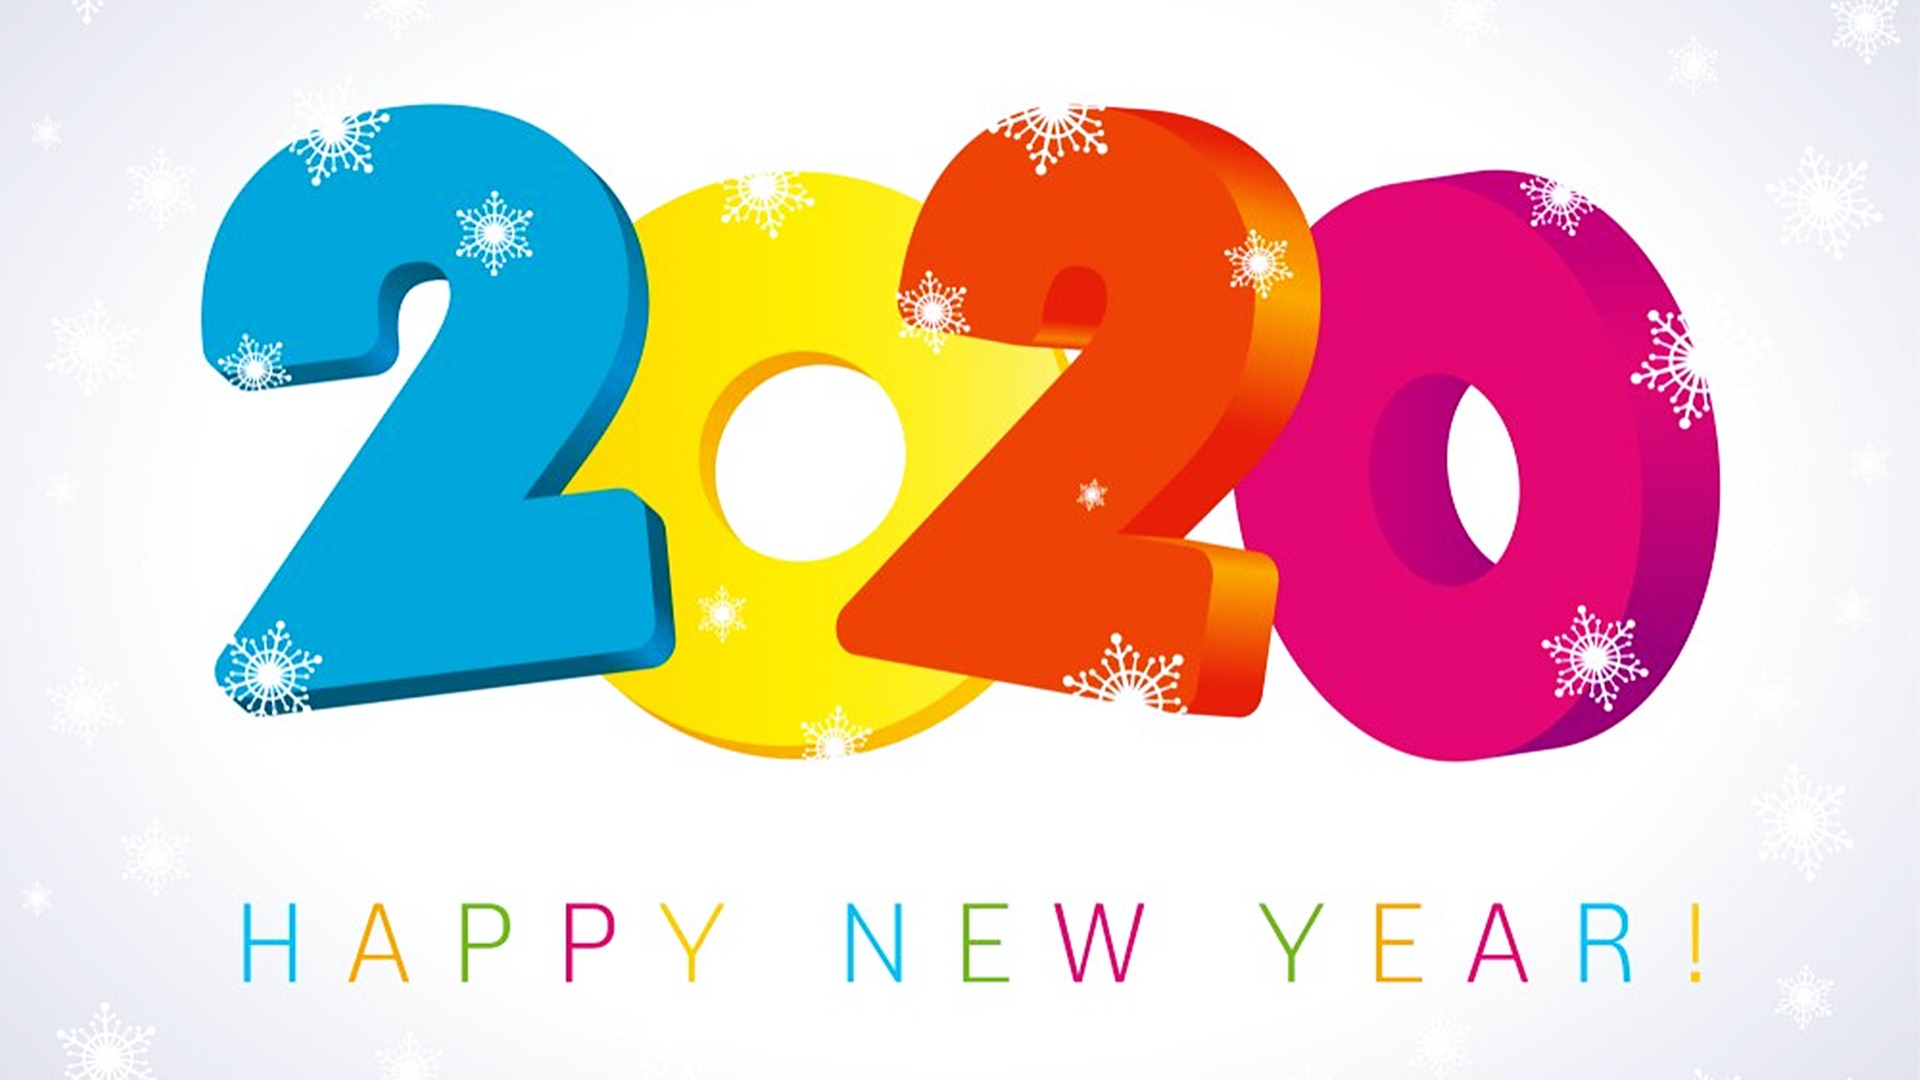 download Happy New Year 2020 Widescreen Wallpapers 45558 1920x1080